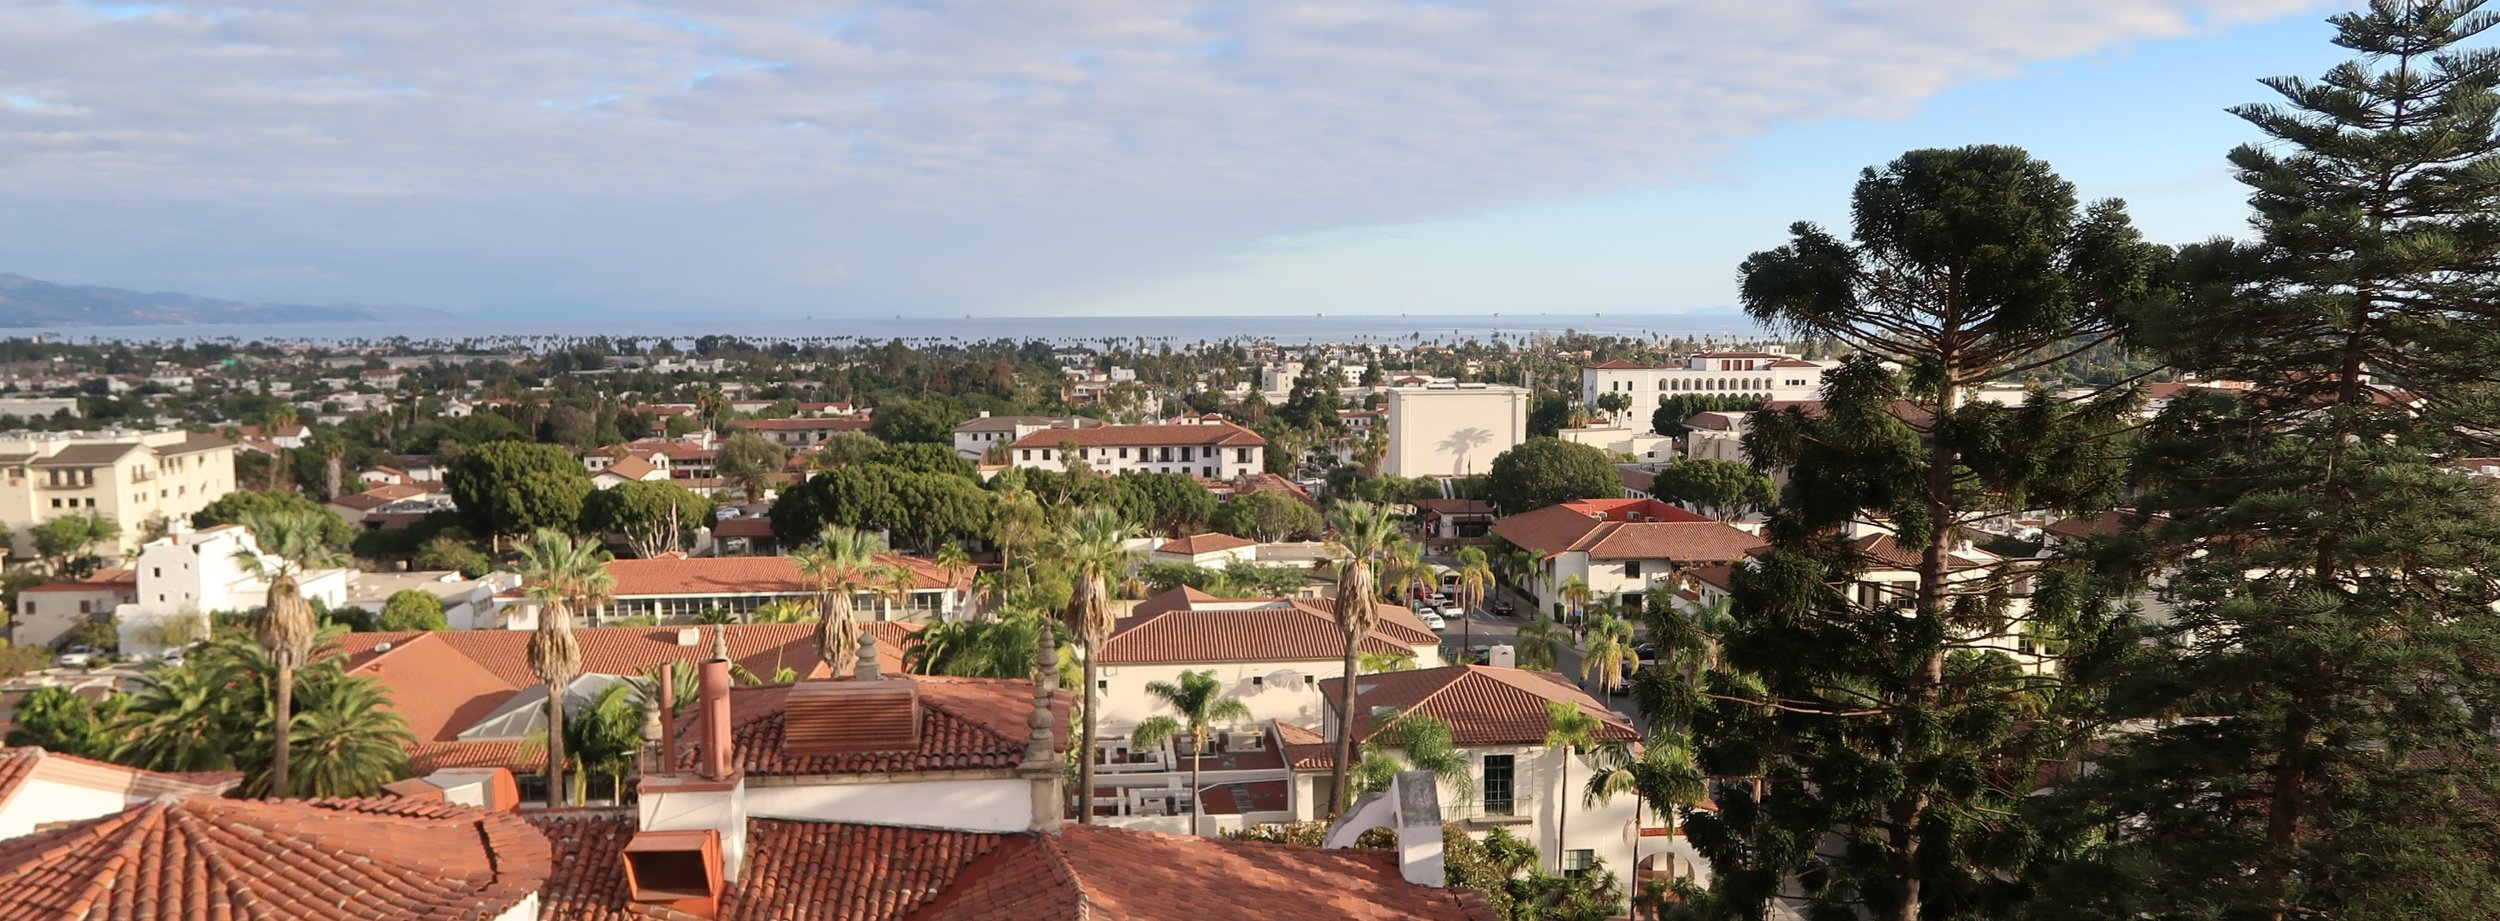 Downtown Santa Barbara is about 17 min drive from campus  (photo by our own George Tzimpragos)